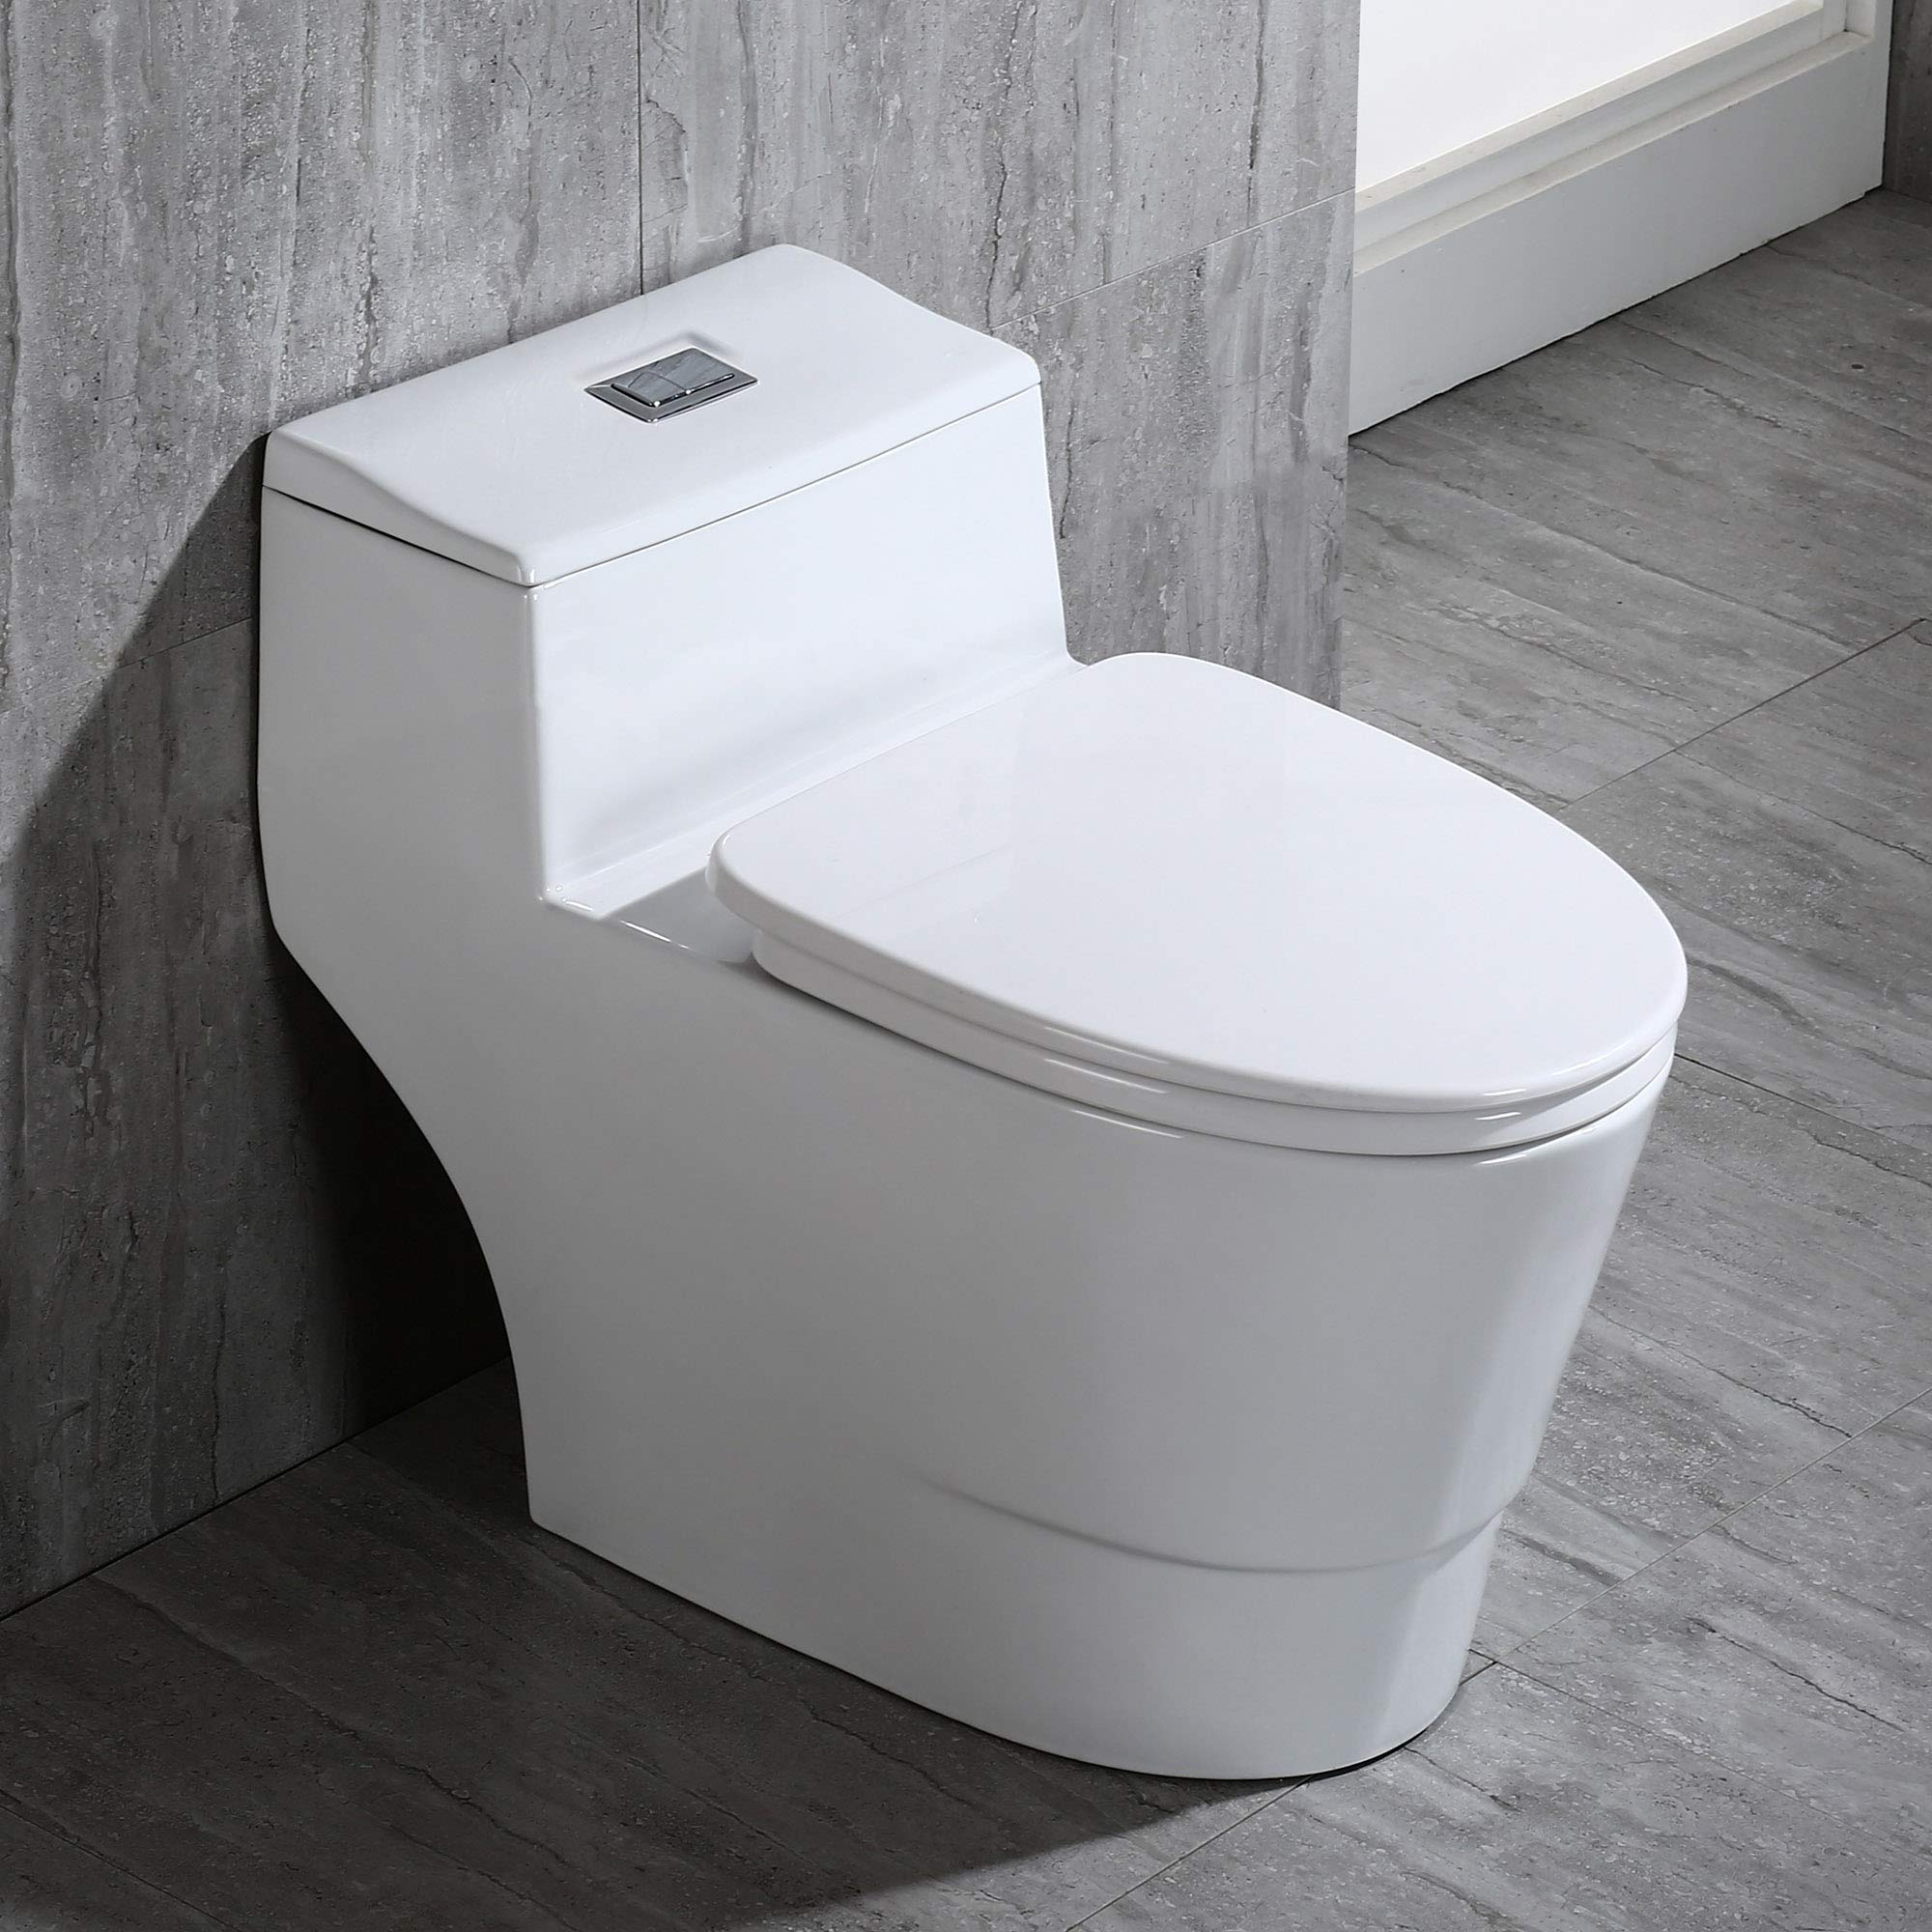 WOODBRIDGE T-0018/B-0735 Dual Flush Elongated One Piece Toilet with Soft Closing Seat, Comfort Height, White T-0018/B0735, Modern by Woodbridge